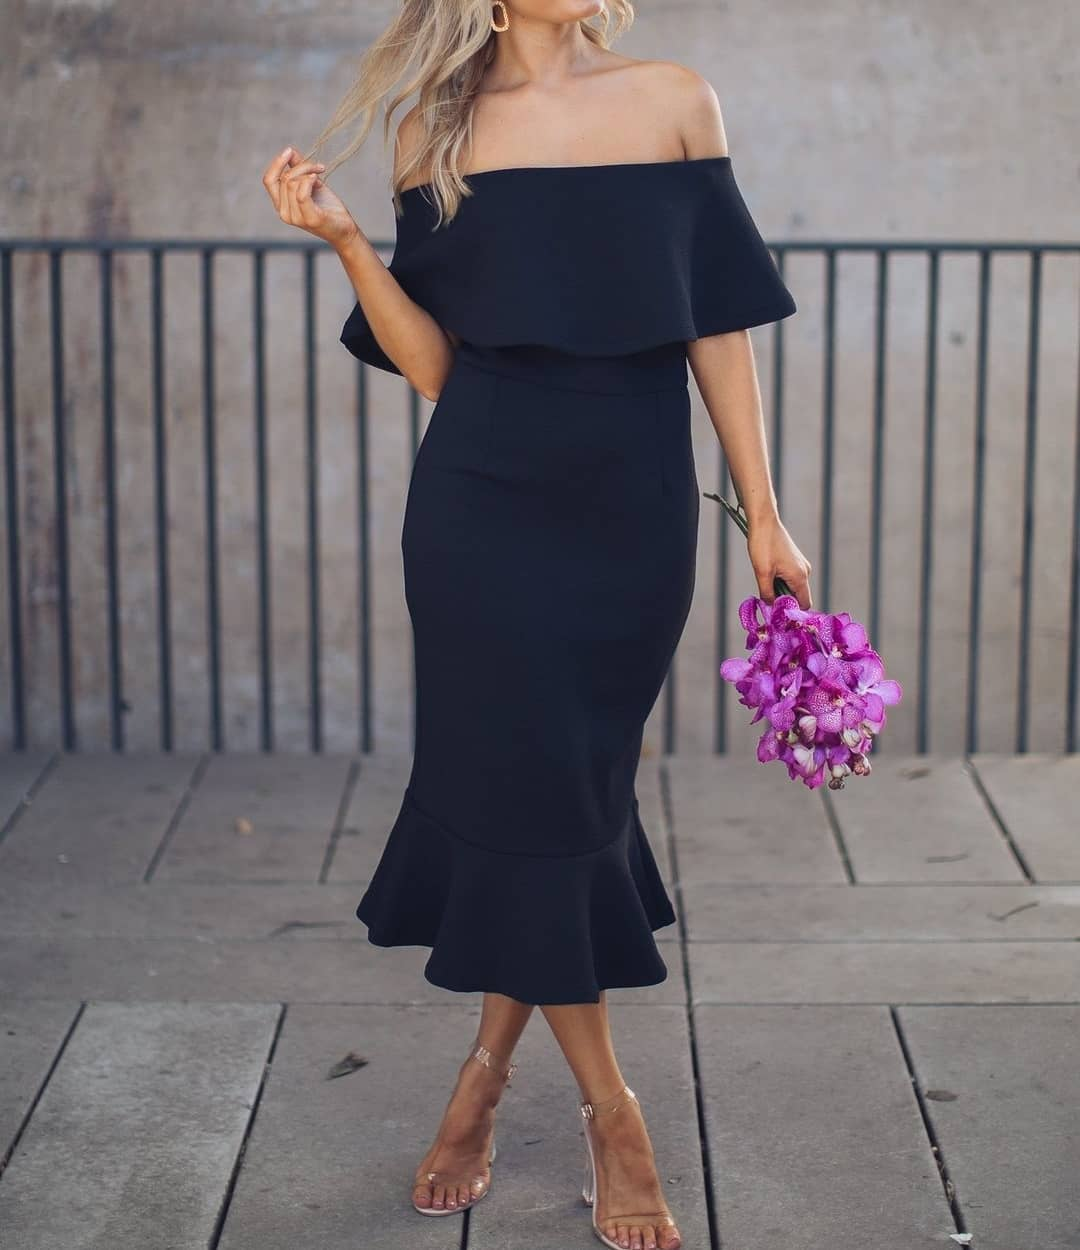 Woman wearing black Ebby & I Off the Shoulder Dress from My Sister Elle clothing